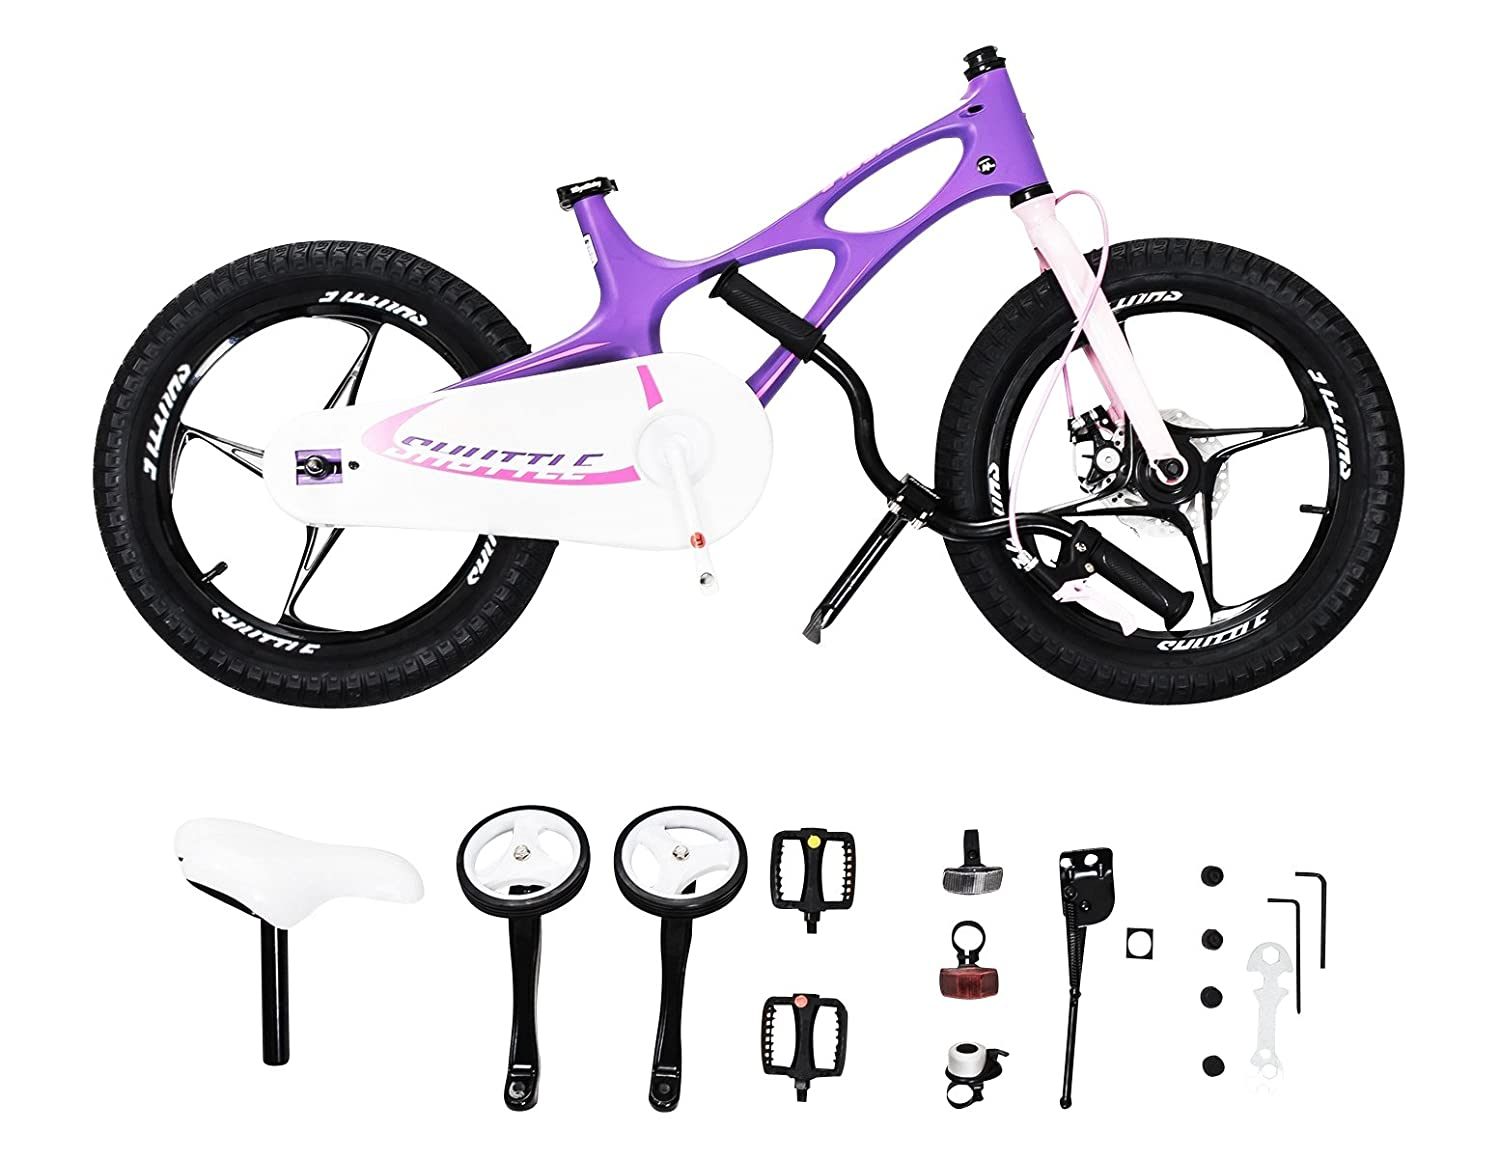 3783ed1d0c7 RoyalBaby Space Shuttle Kid's Bike, Lightweight Magnesium Frame, 16 inch  with Training Wheels and Kickstand, White, 2017 Newly-launched: Amazon.ca:  Sports & ...